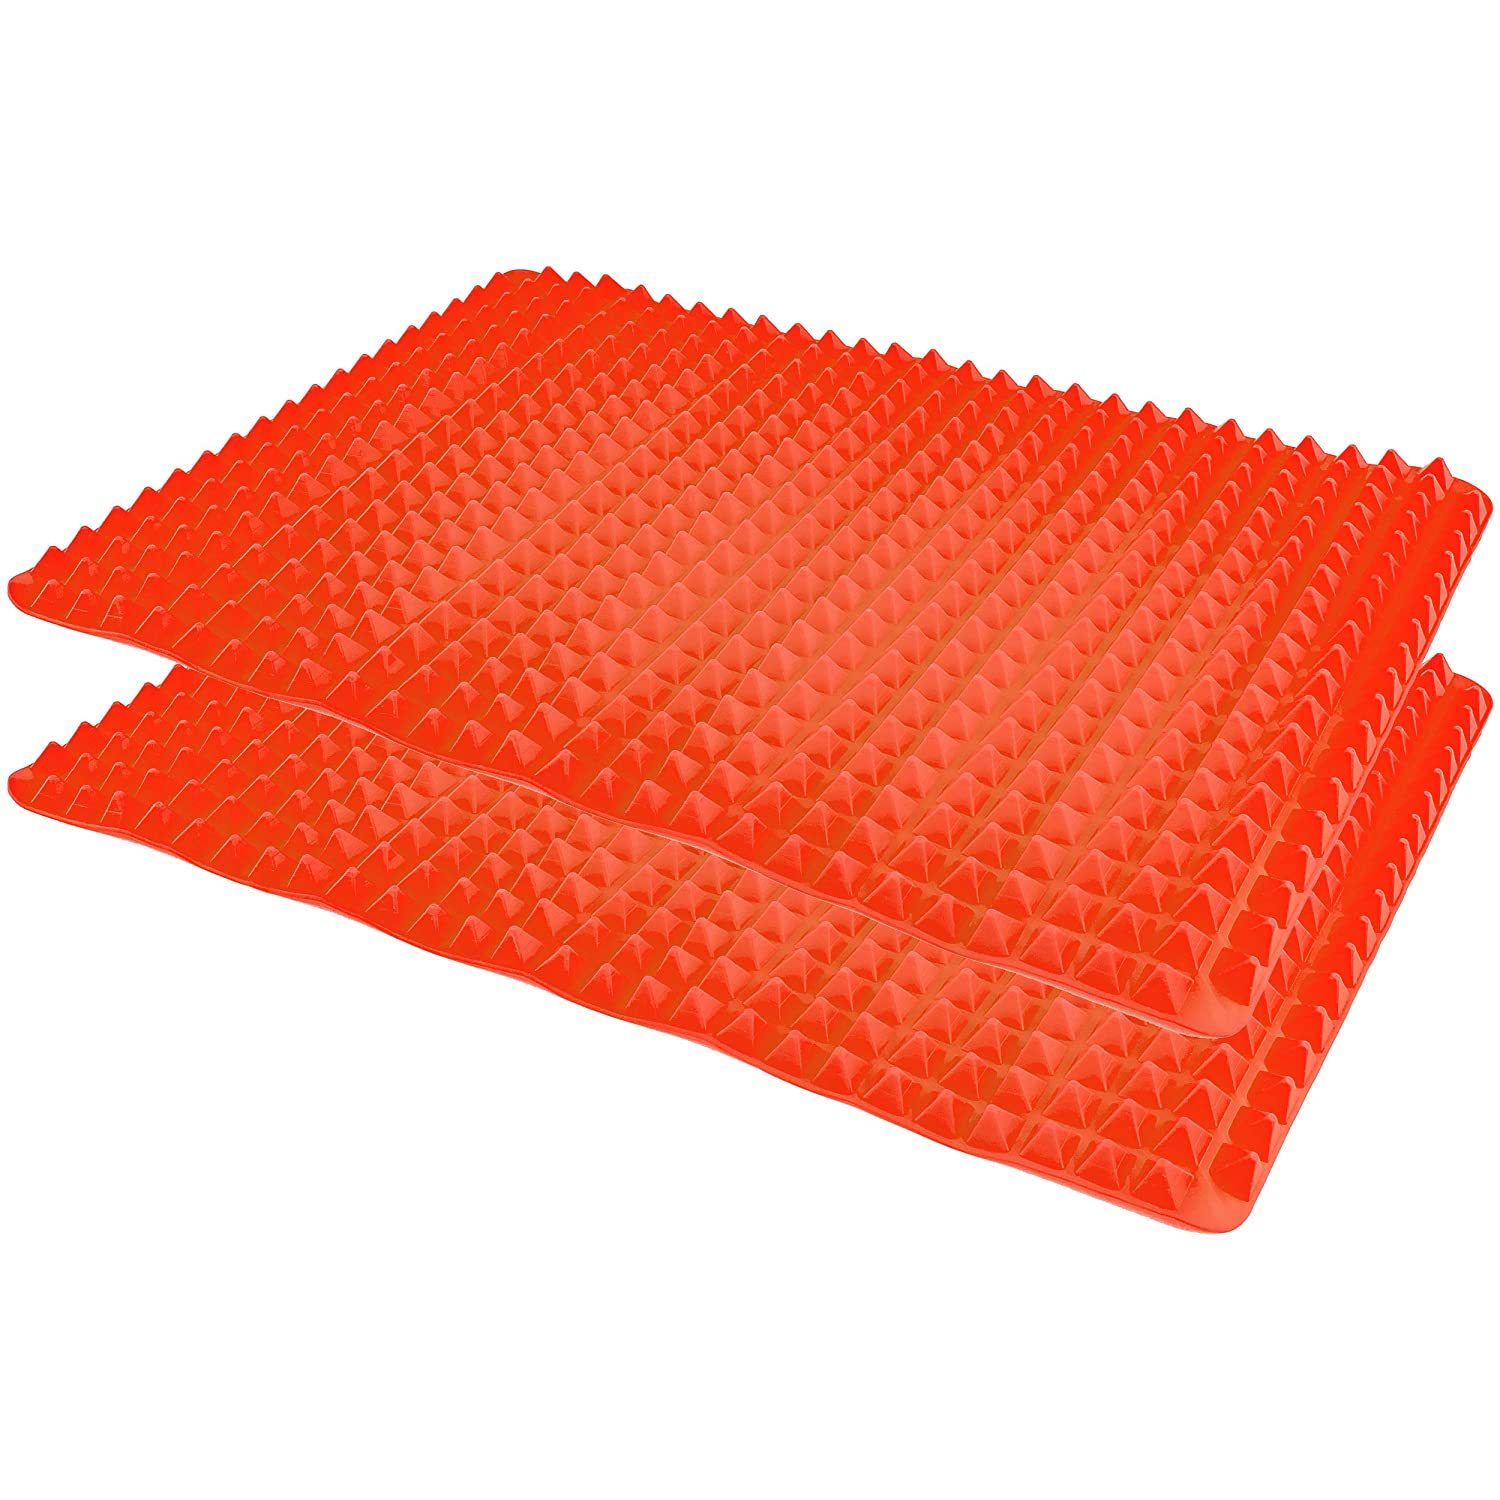 Healthy Homewares Raised Silicone Baking Sheet Non-Stick Cooking Mat Oven Tray Liner, Red Set of 2